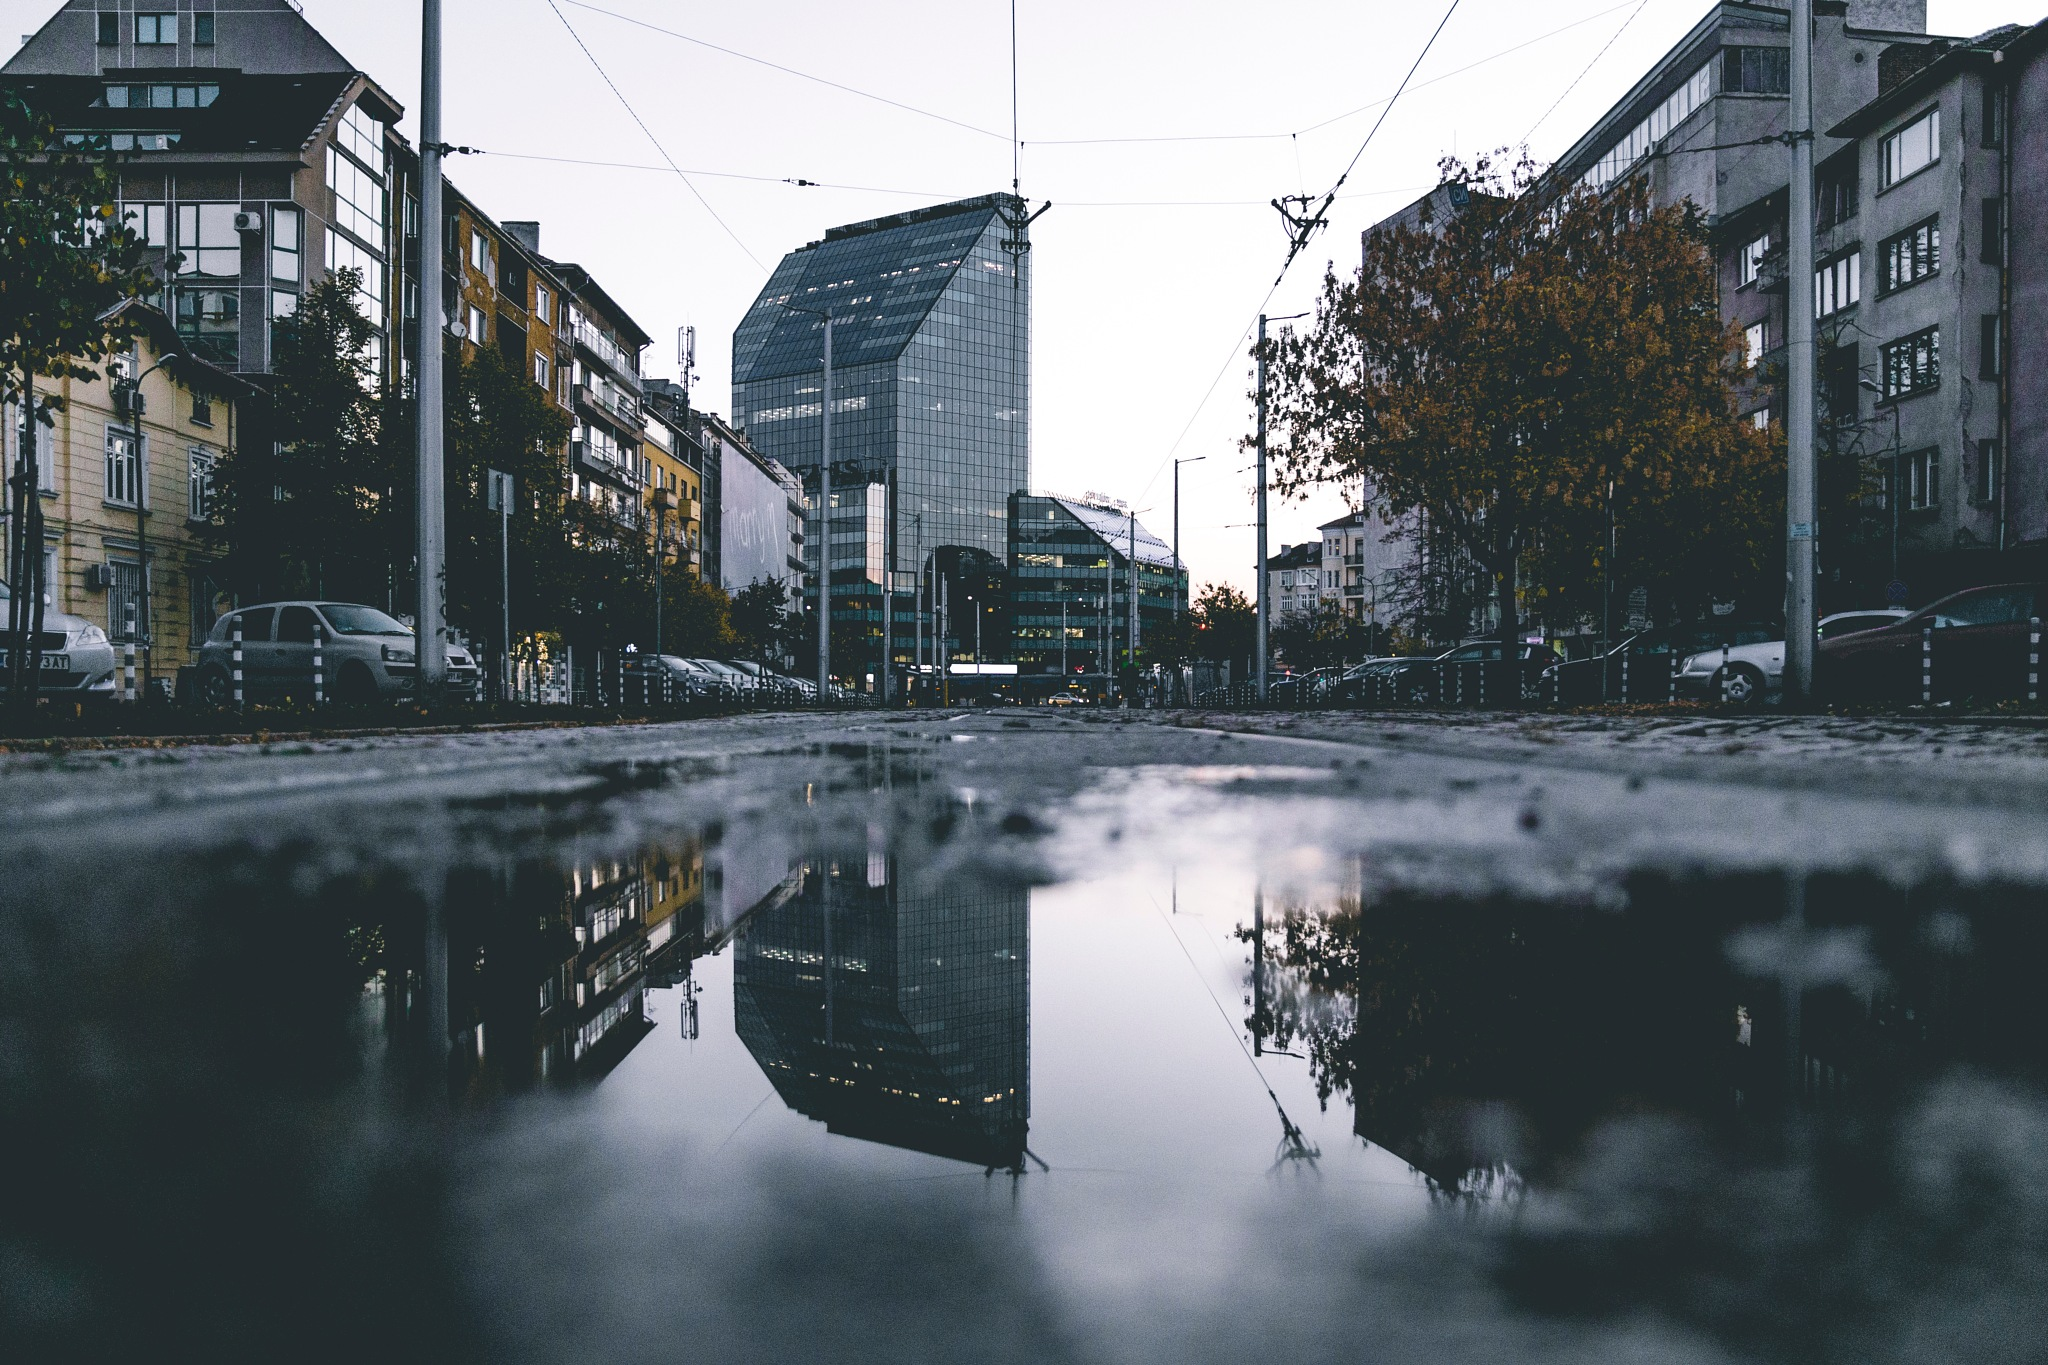 Reflection by Petar